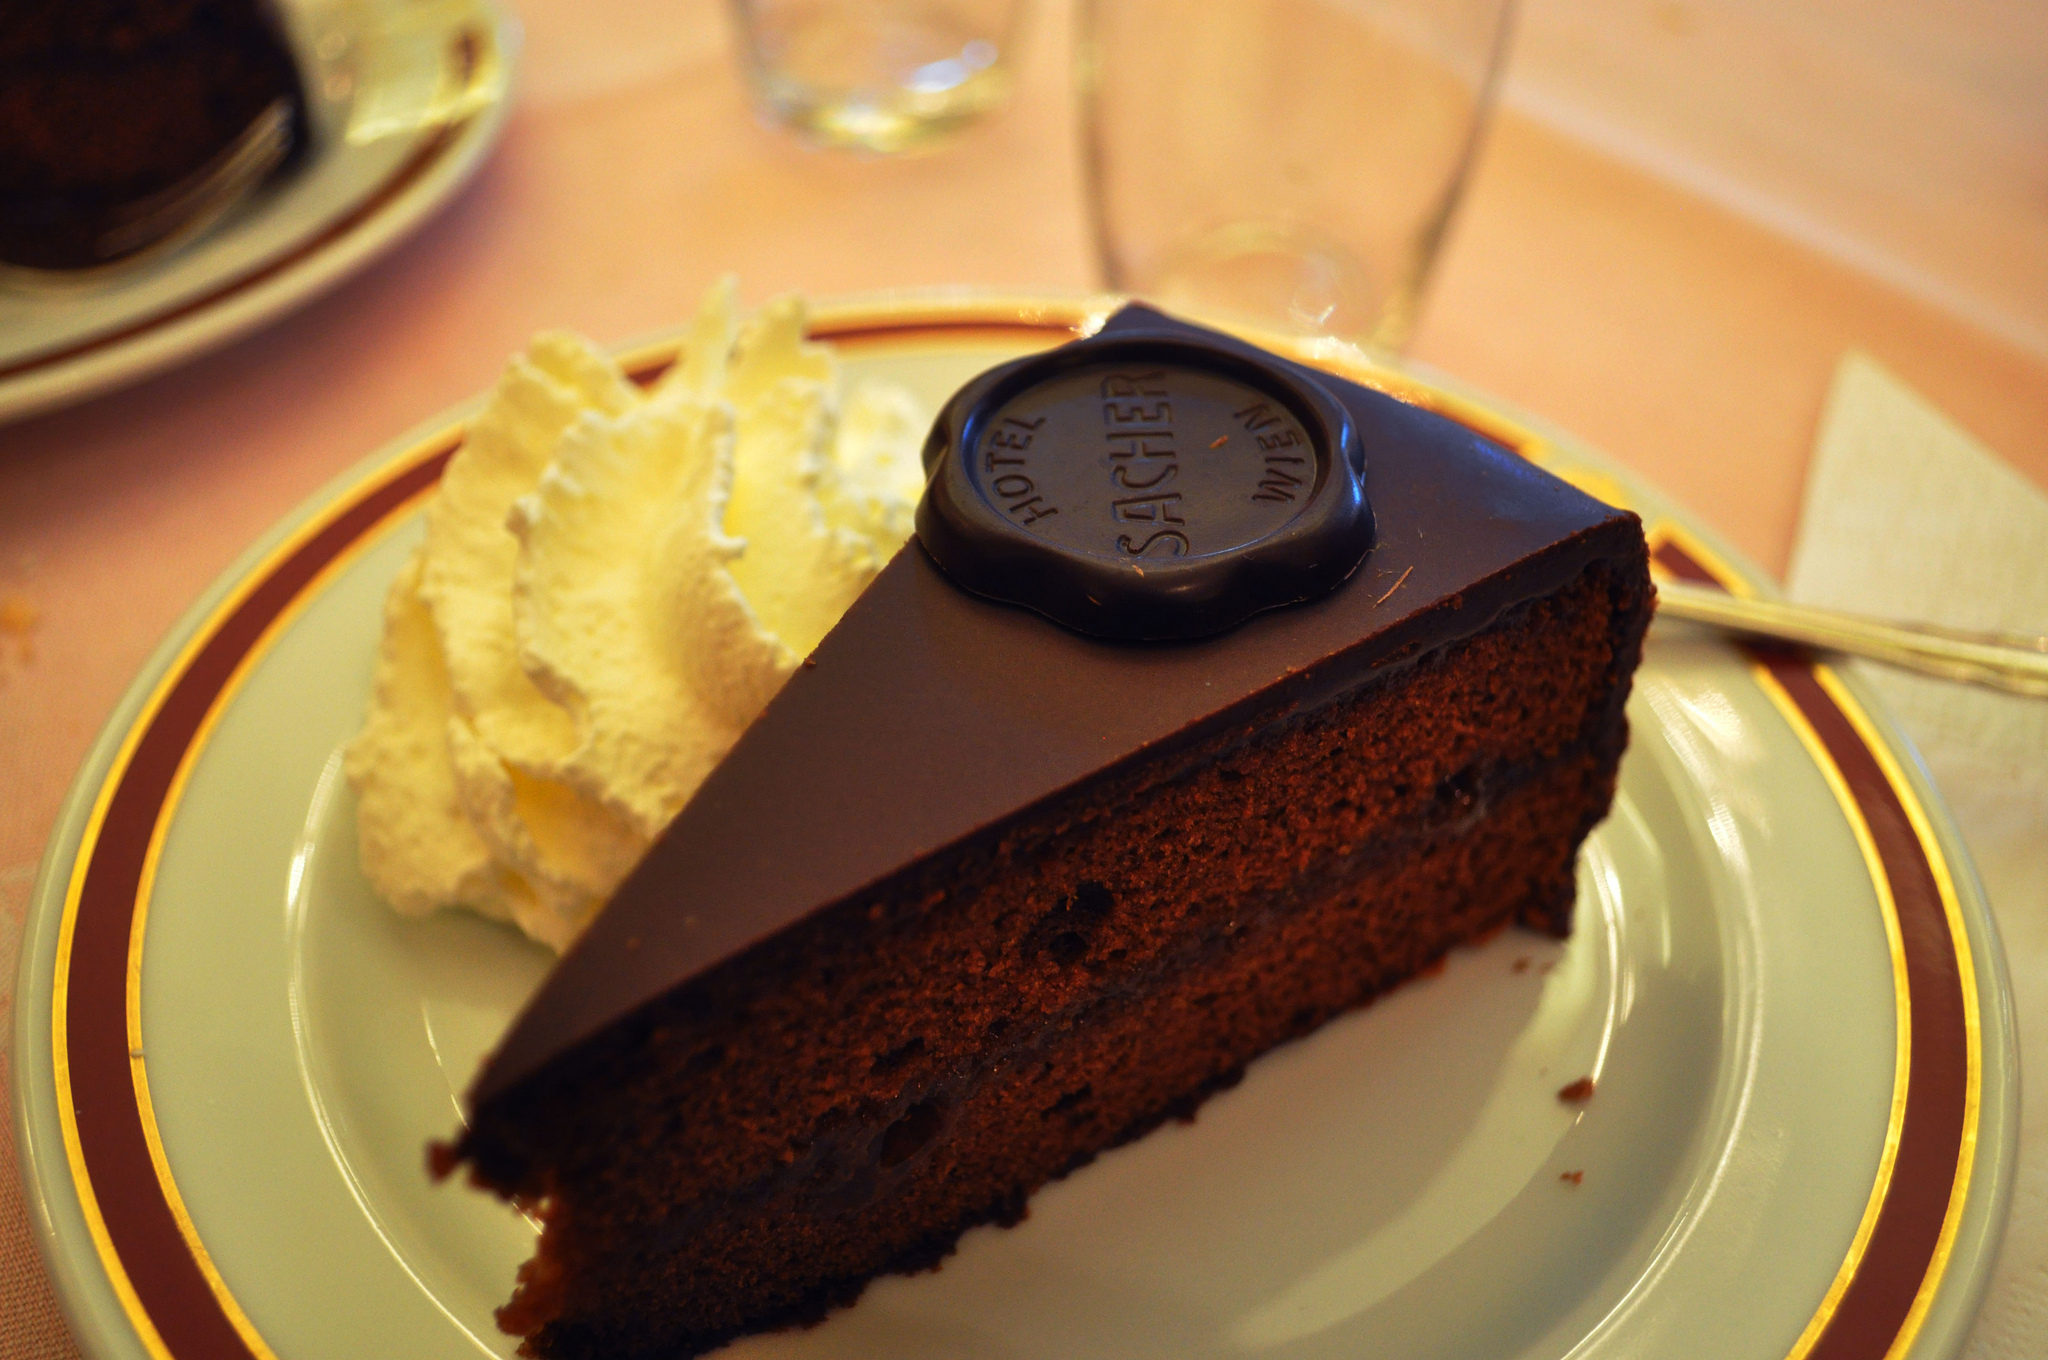 The classic Sachertorte